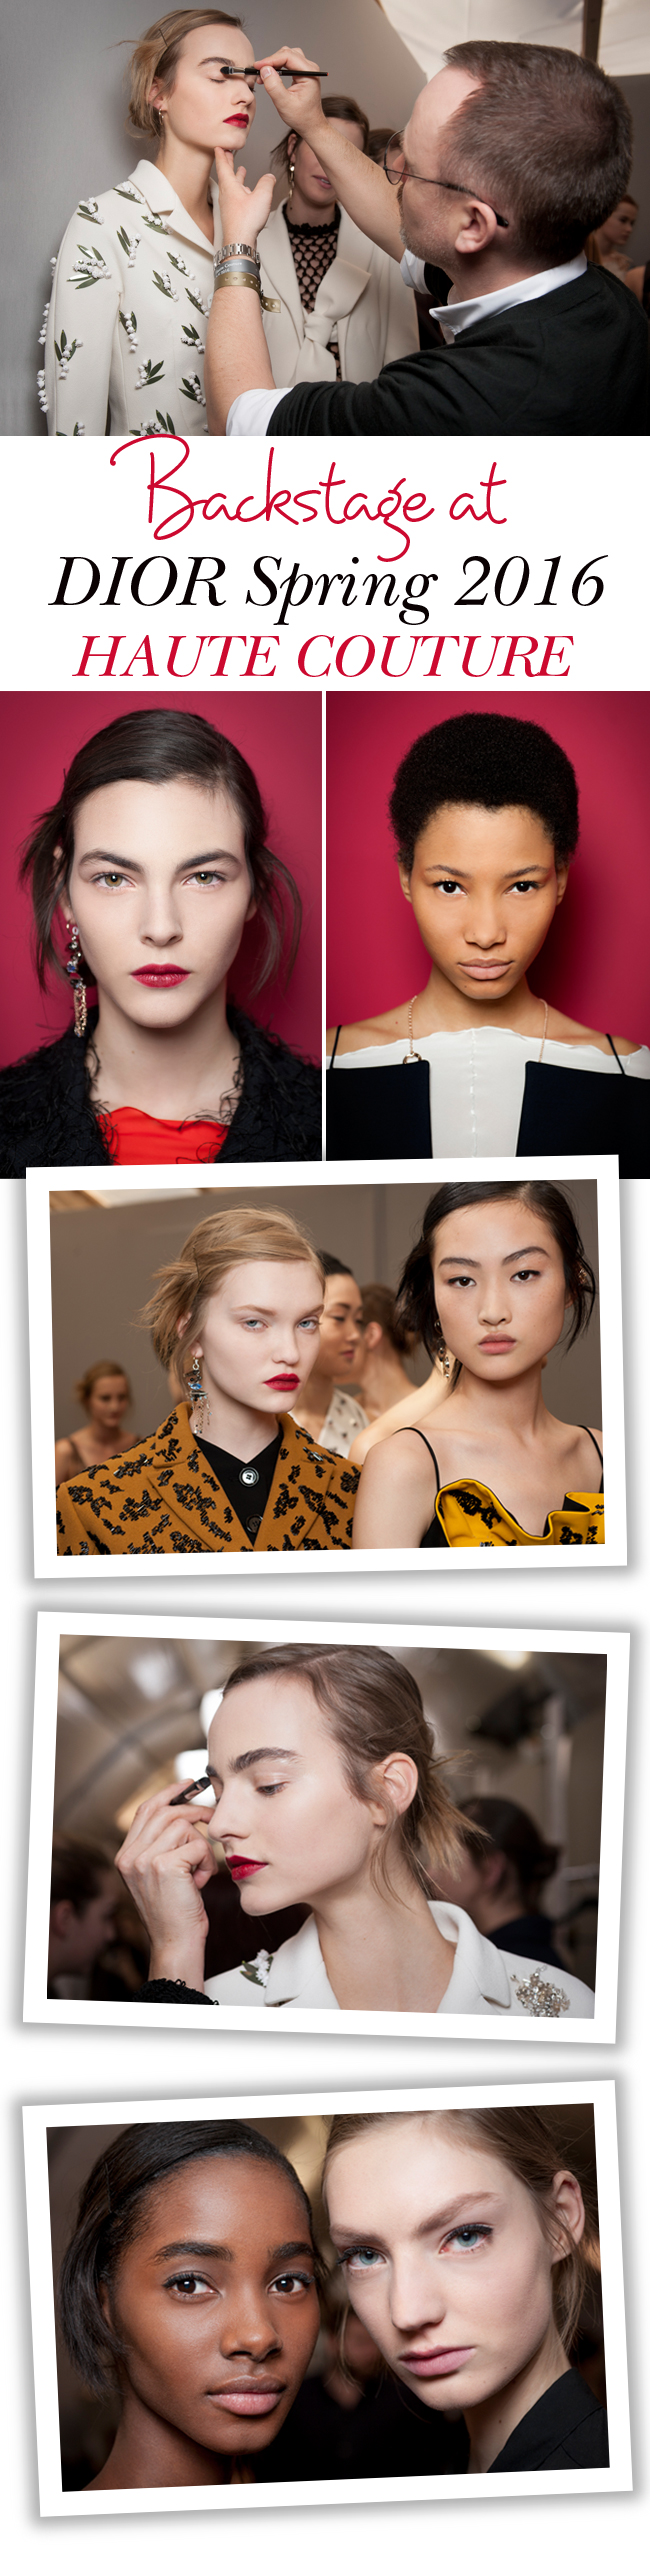 BACKSTAGE AT DIOR ~ SPRING 2016 HAUTE COUTURE BEAUTY LOOK, Dior, Dior Haute Couture, Dior Spring 2016 Haute Couture Show, Dior backstage, Peter Phillips, Dior Beauty, Dior Makeup, Makeup trends